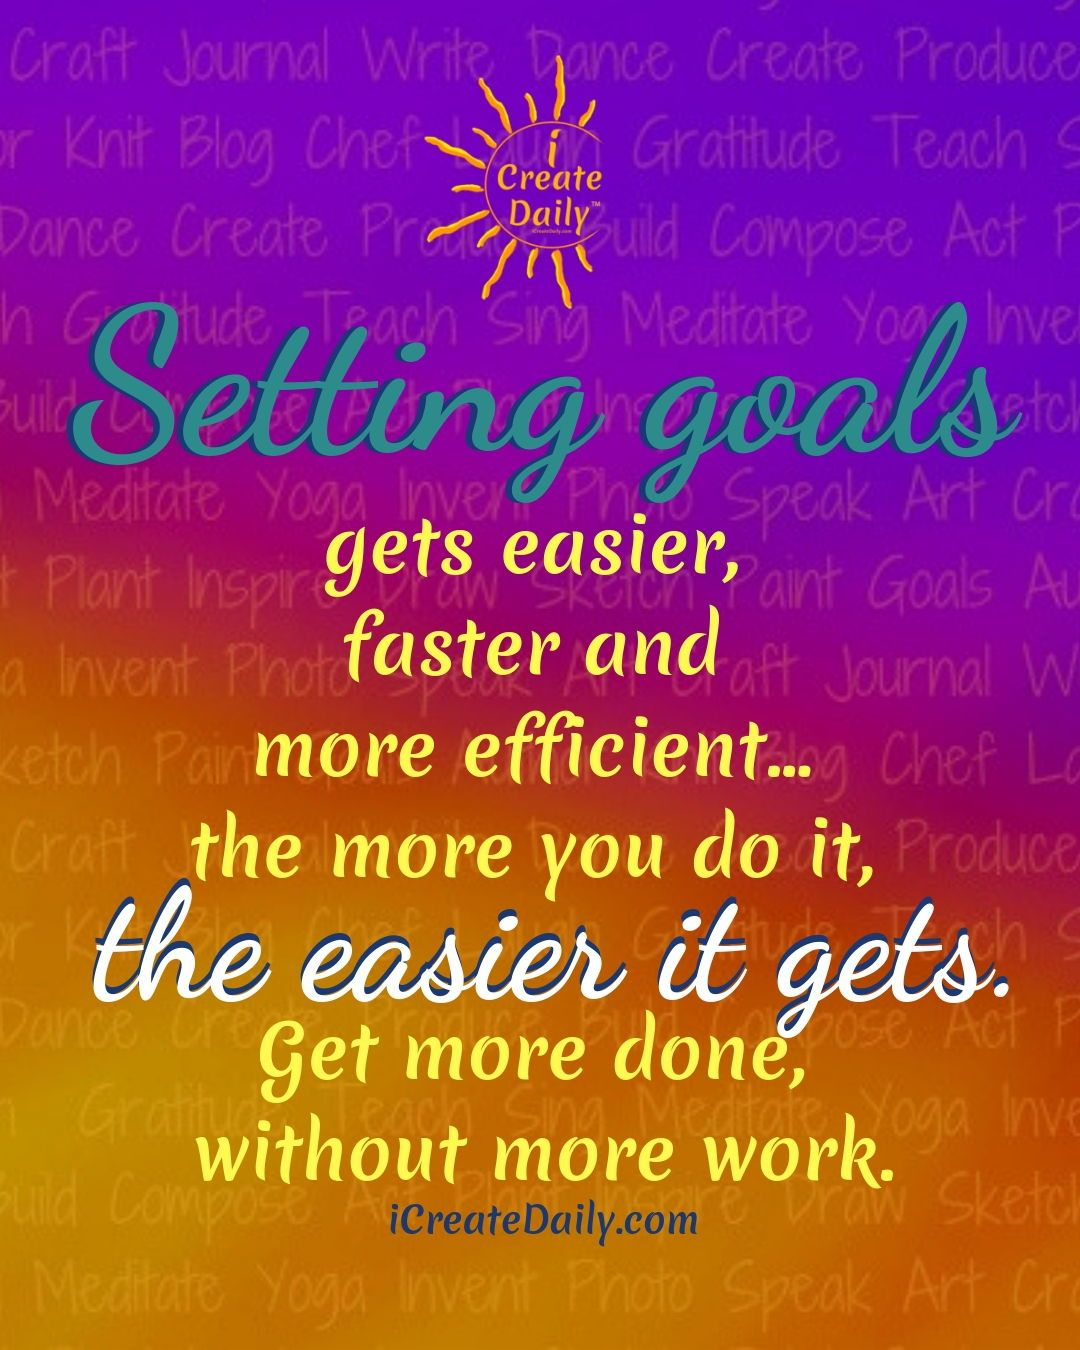 90 Day Goal Journal Personal Mission Statement Example Goals Chef